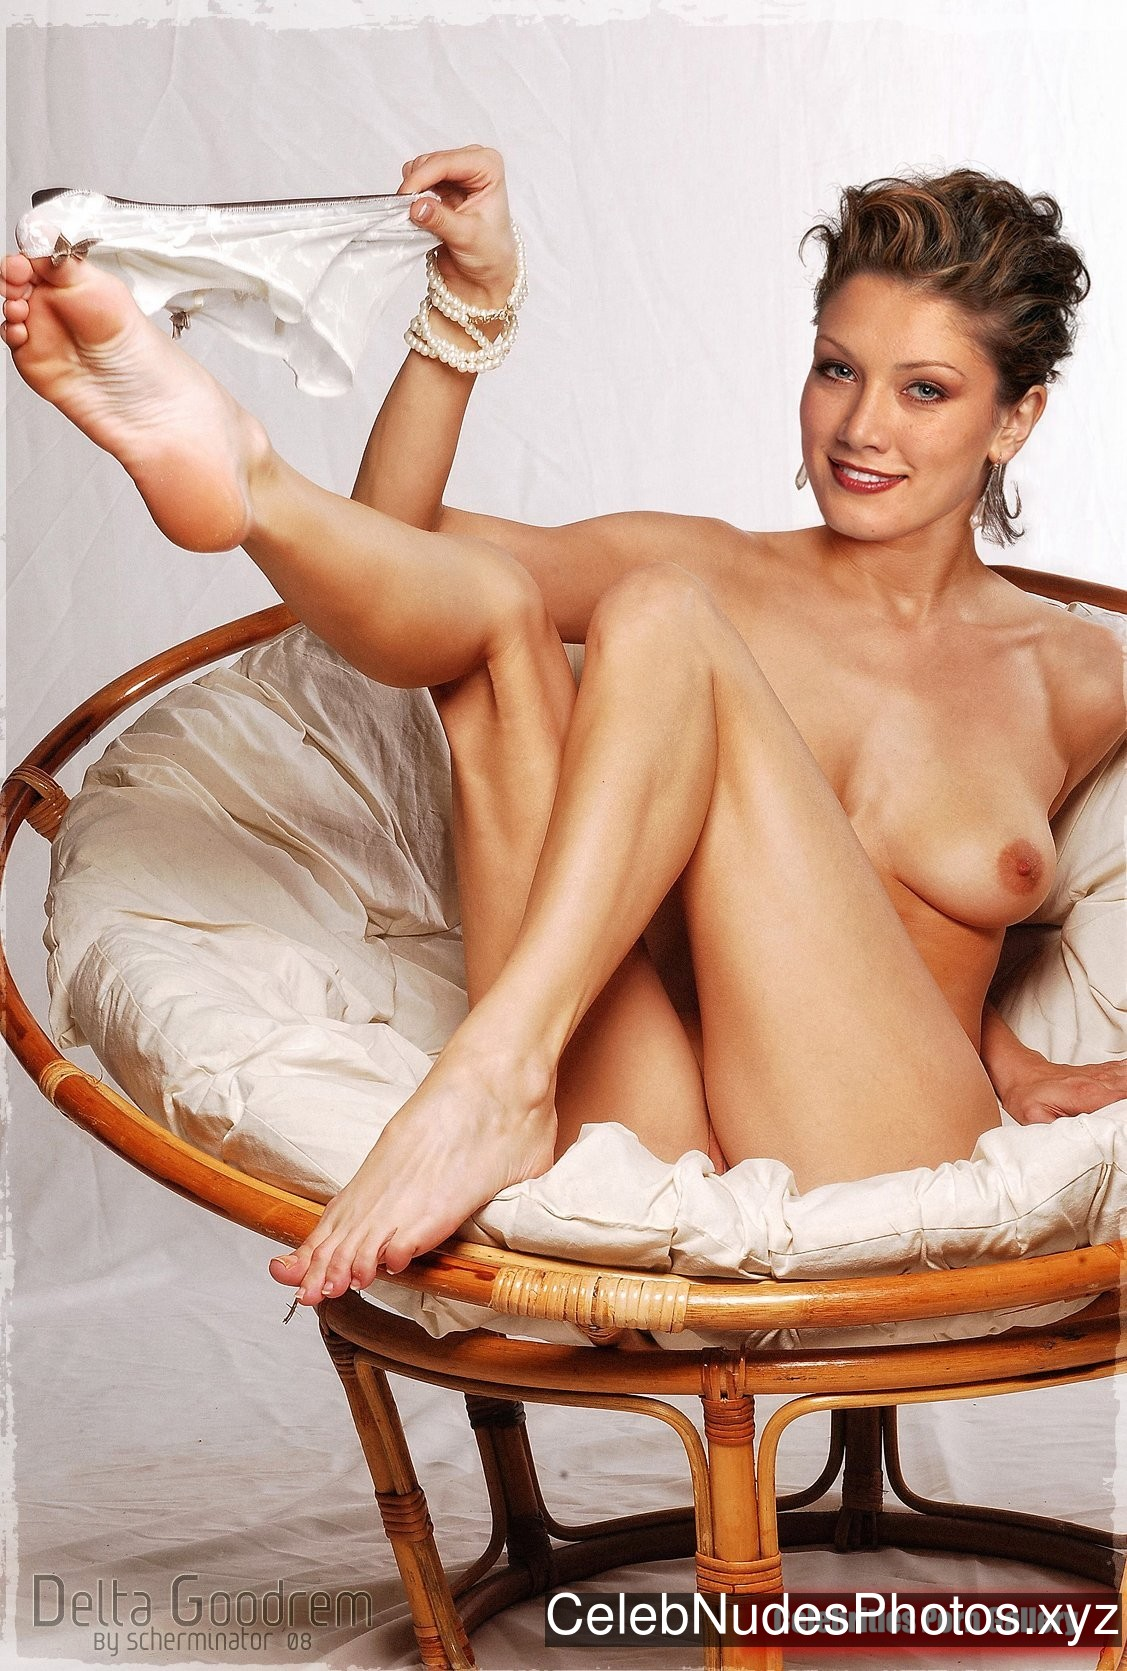 Delta Goodrem Best Celebrity Nude sexy 2